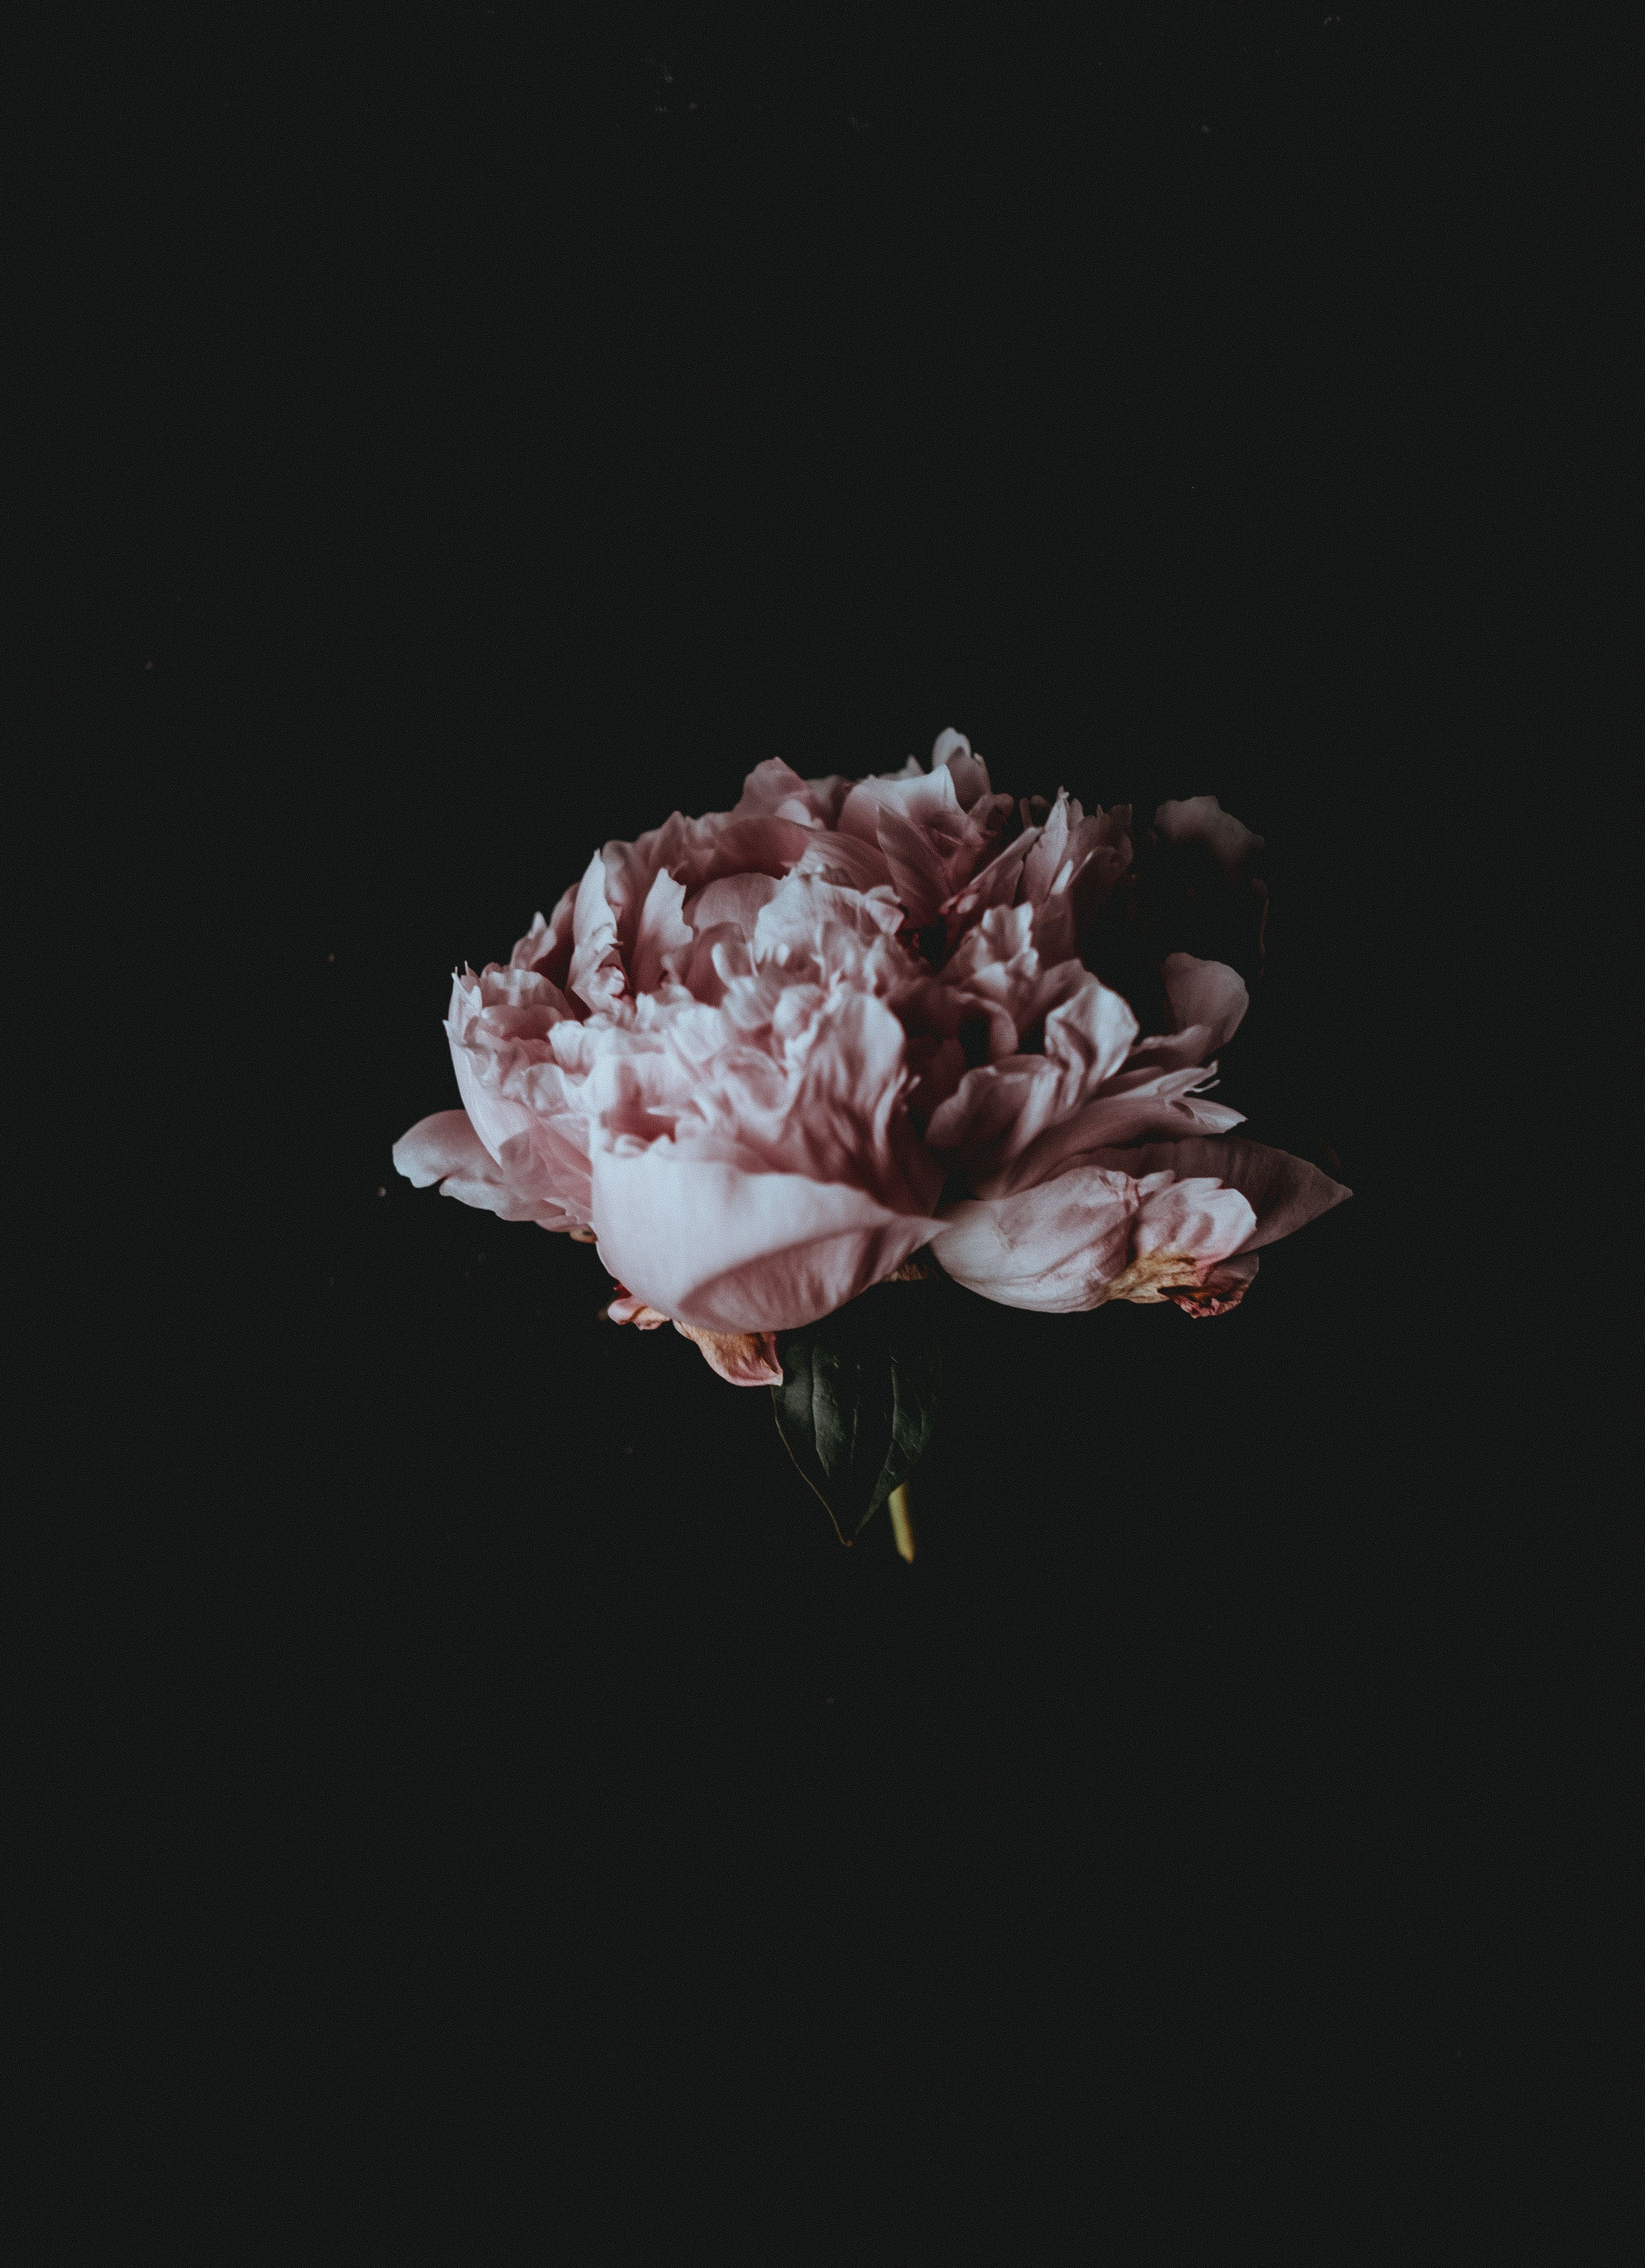 Amazing Travel Wallpapers For Iphone X Peony Wallpaper Flower Aesthetic Dark Flowers